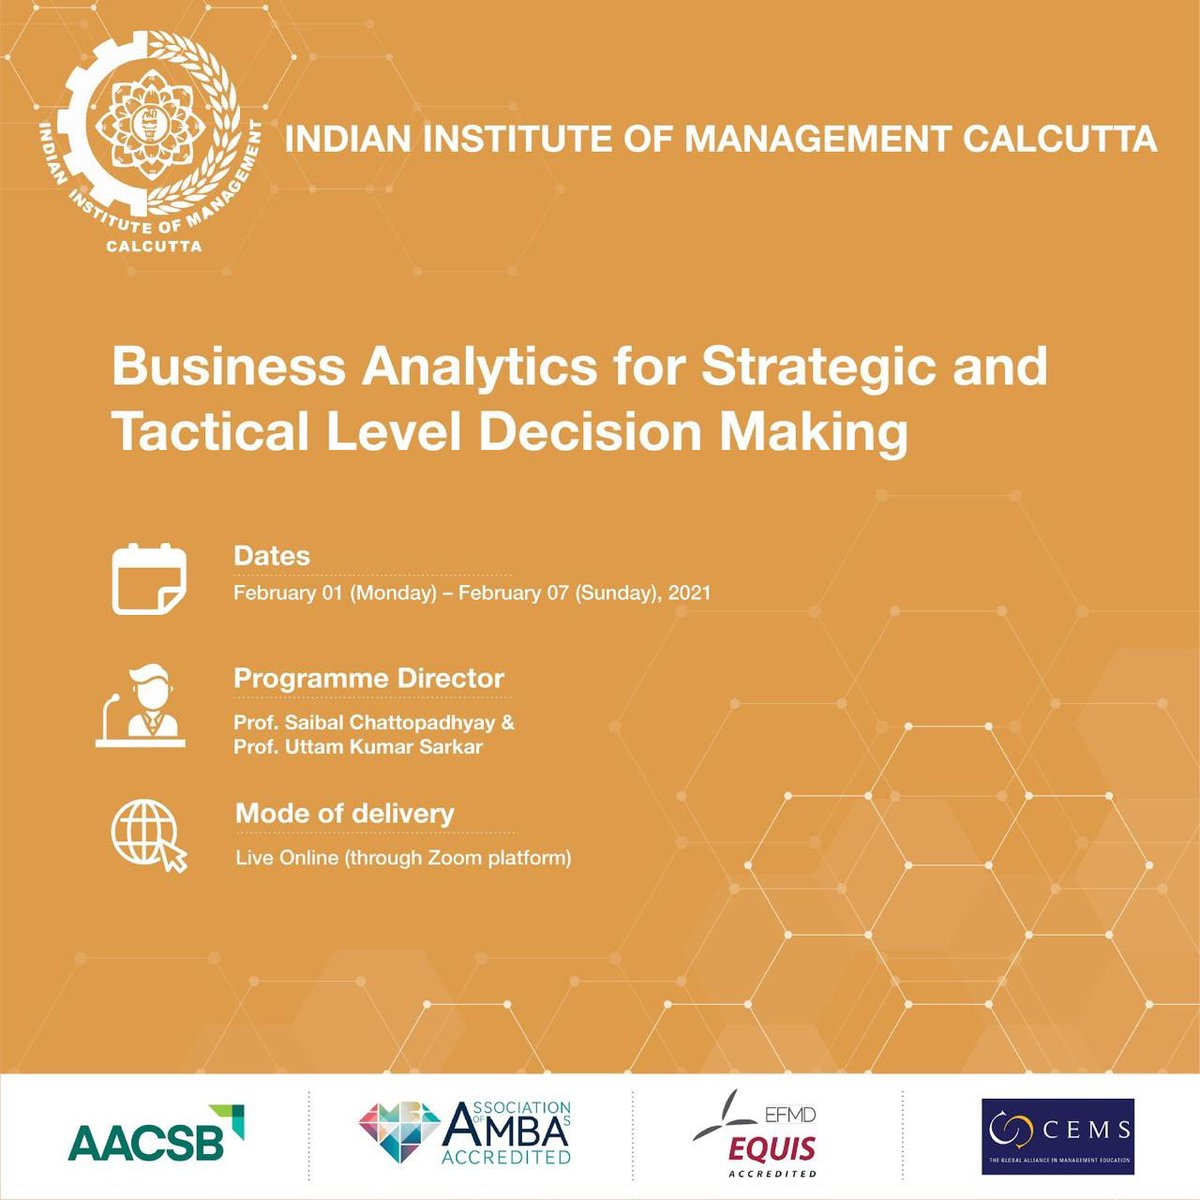 Join IIM Calcutta's Business Analytics for Strategic and Tactical Level Decision Making online programme which aims to sensitize the participants about the myths, promises & realities surrounding business analytics. Know more: https://t.co/2CRxA3dh2b https://t.co/iYMdDzcNzh